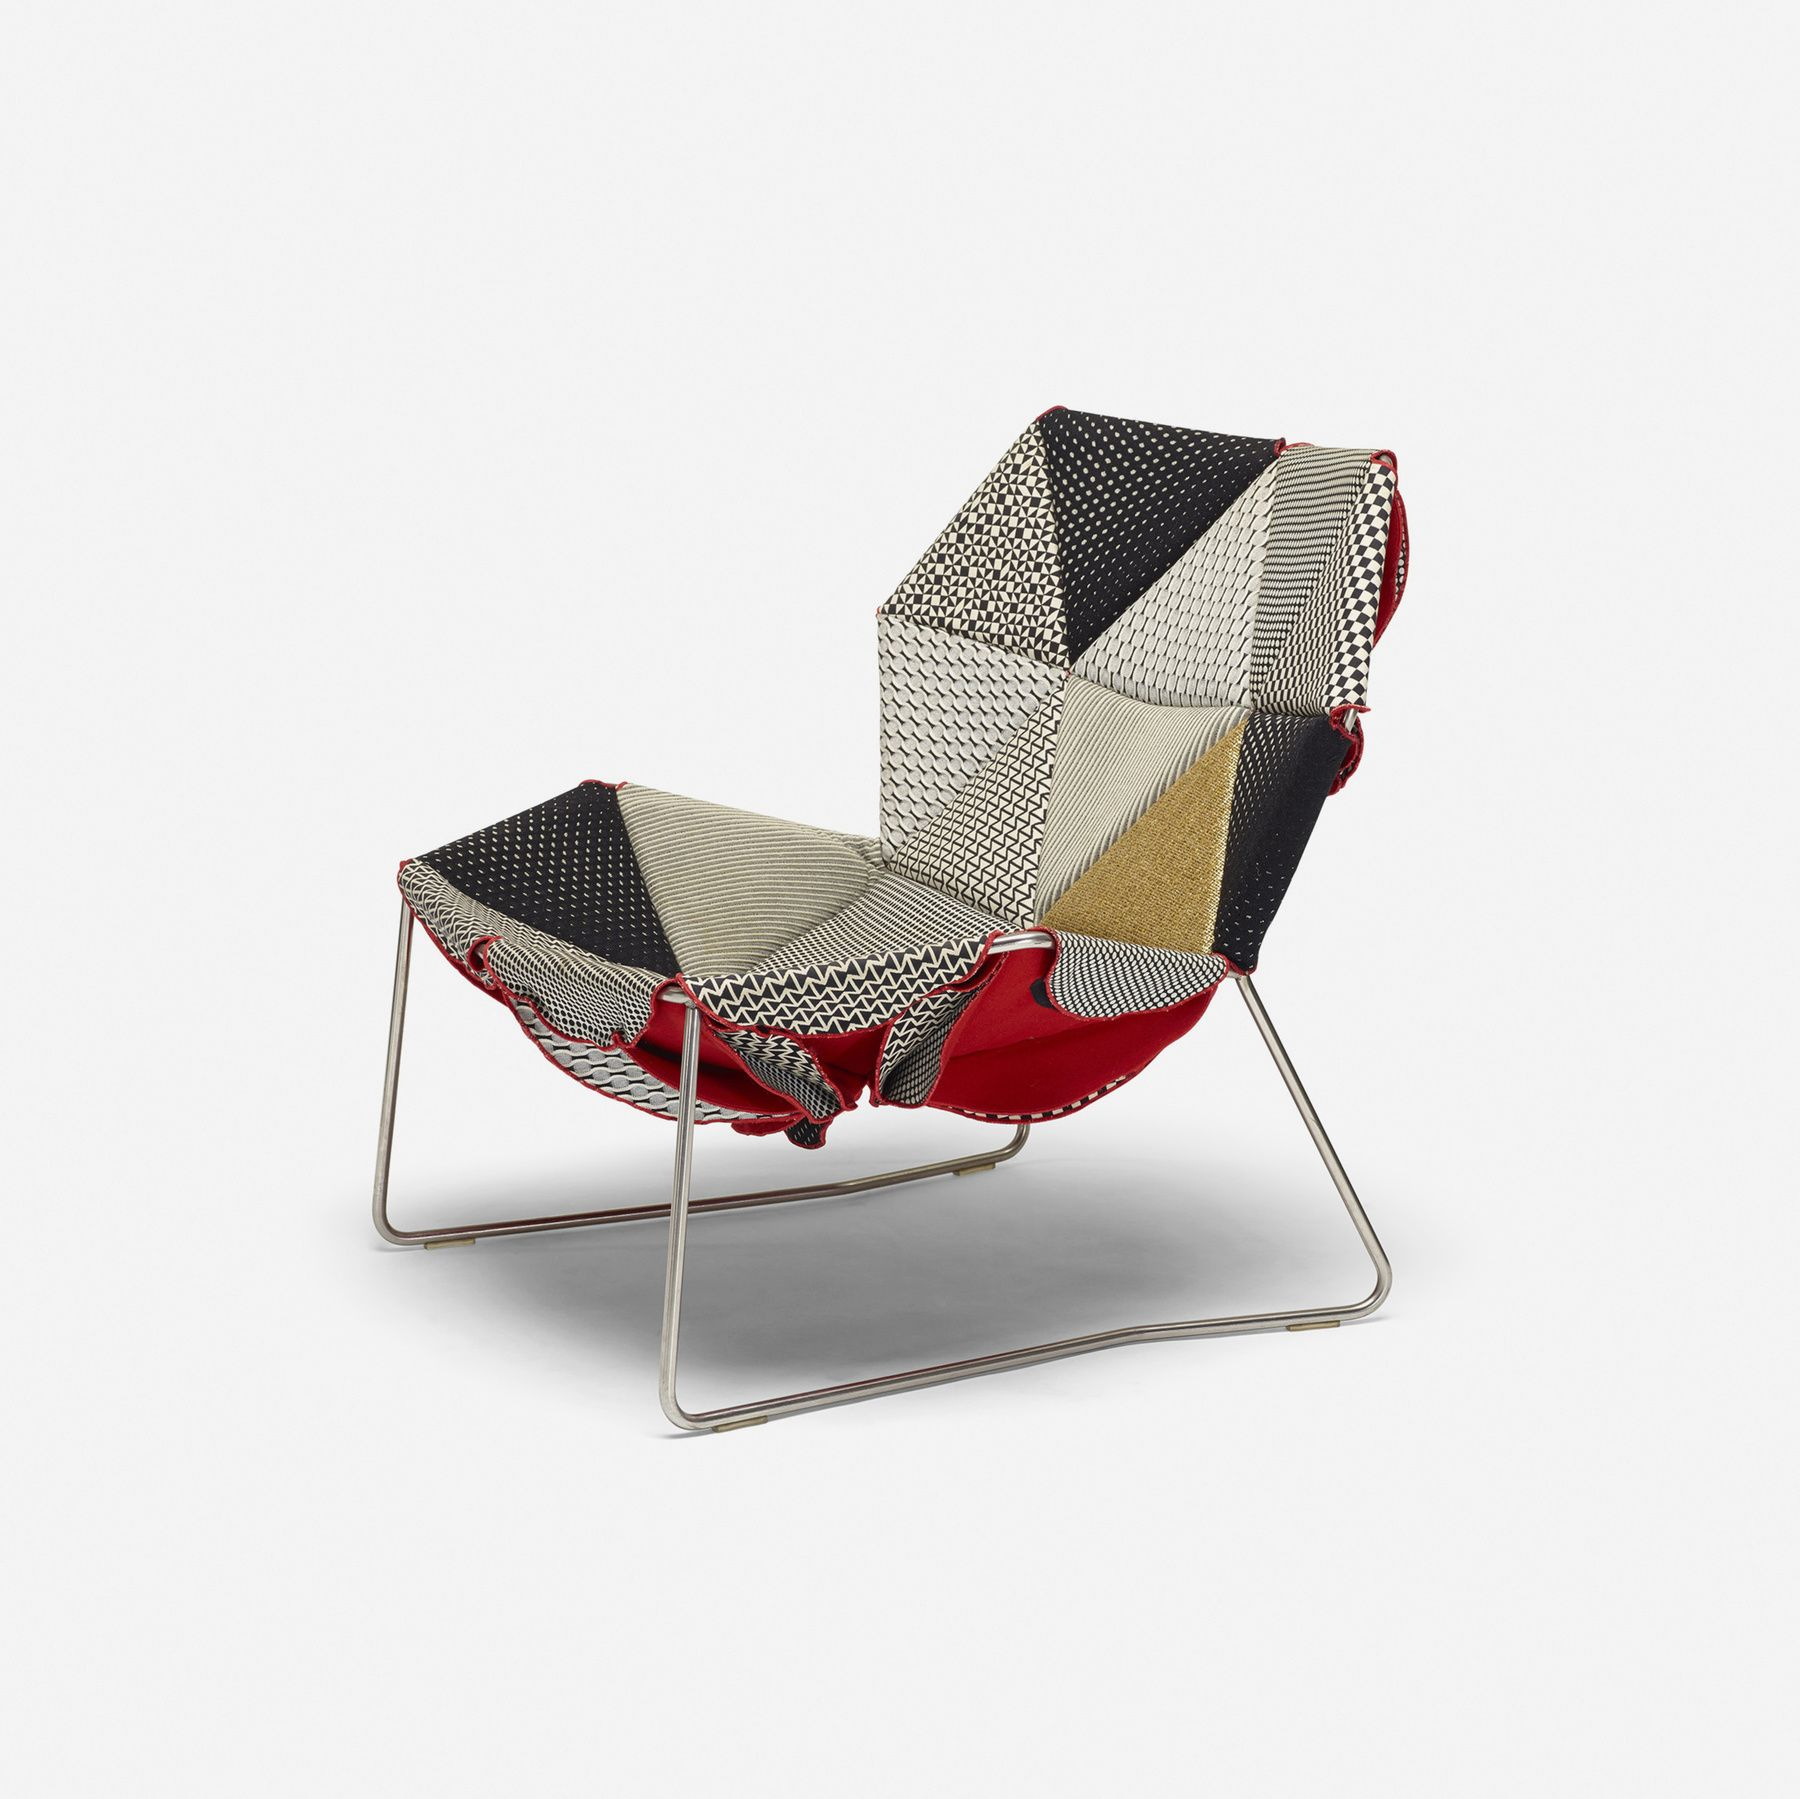 PATRICIA URQUIOLA, Antibodi lounge chair | Wright20.com ...